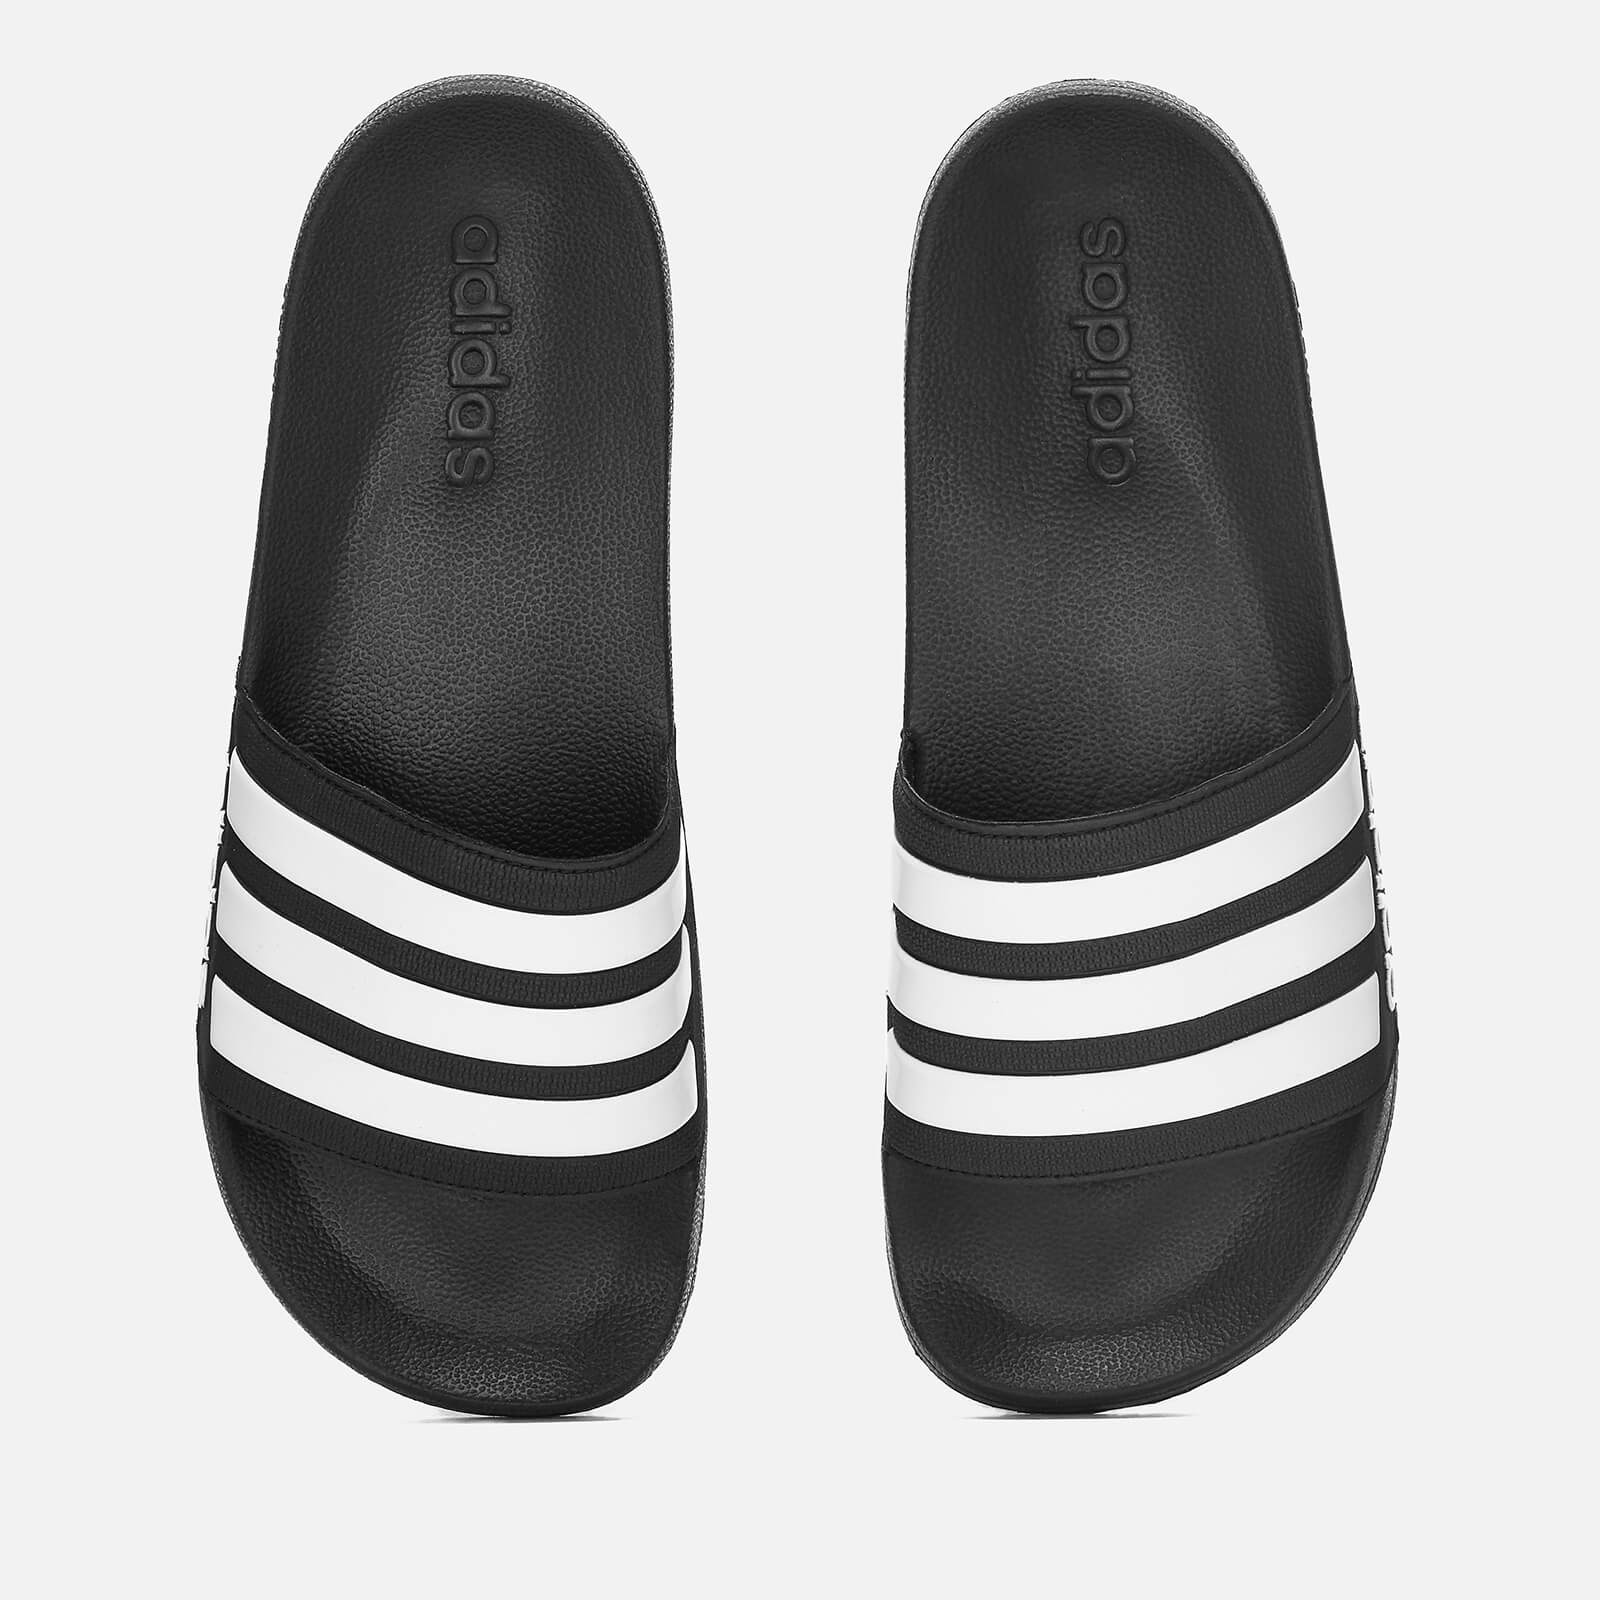 sports shoes 20777 8a109 adidas Men s Adilette Shower Slide Sandals - Black   ProBikeKit.com